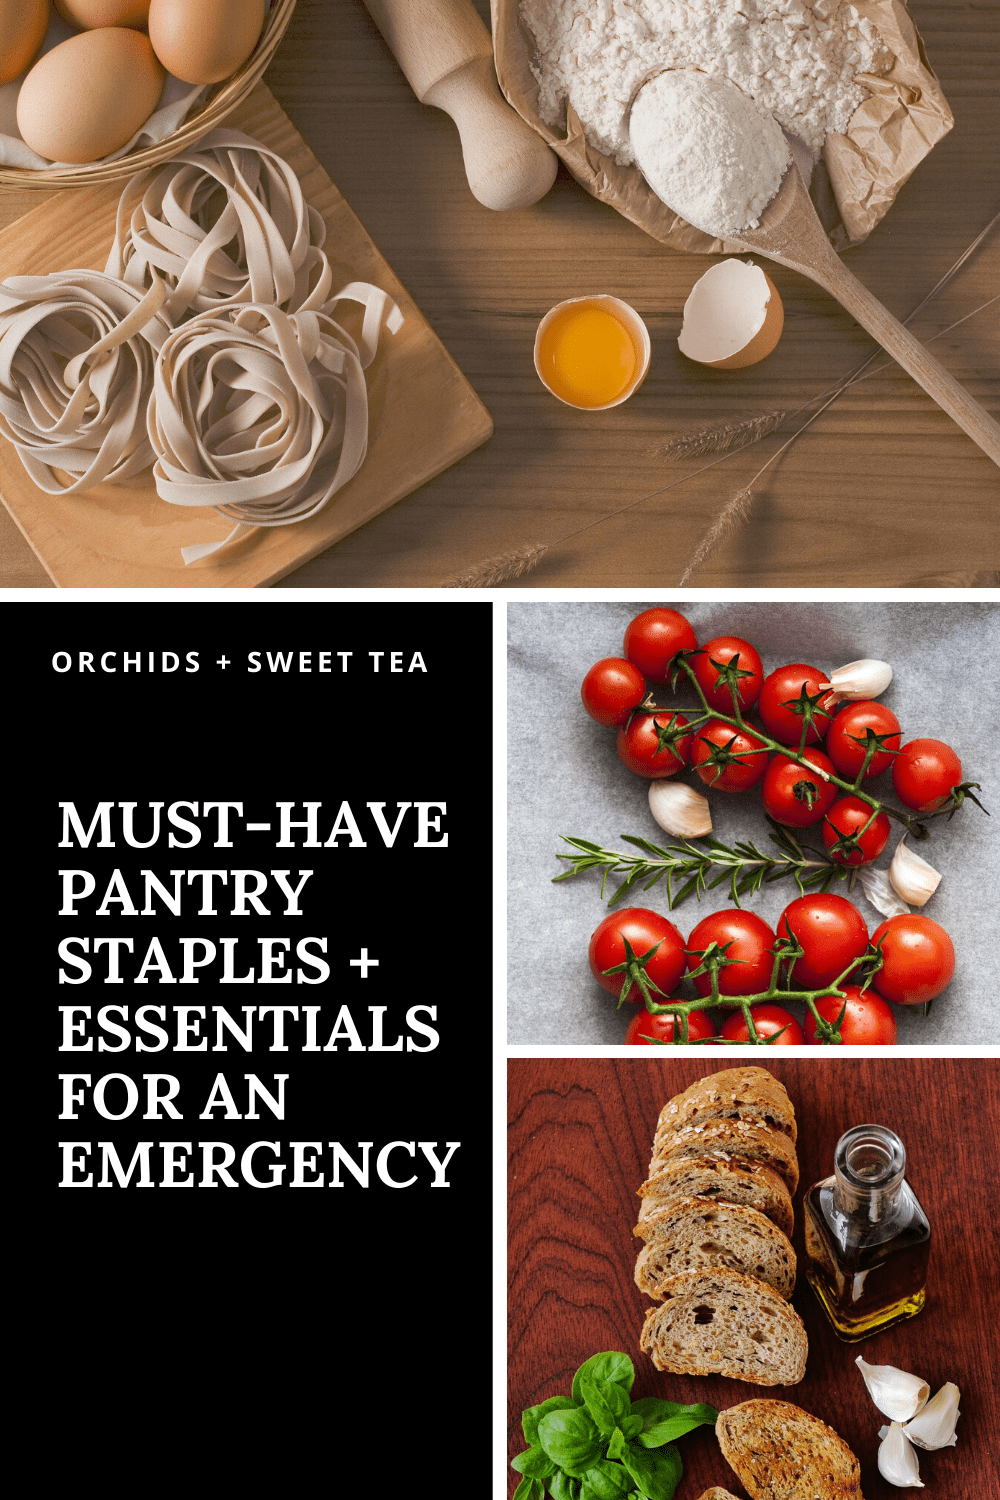 Must-Have Pantry Staples + Essentials for an Emergency